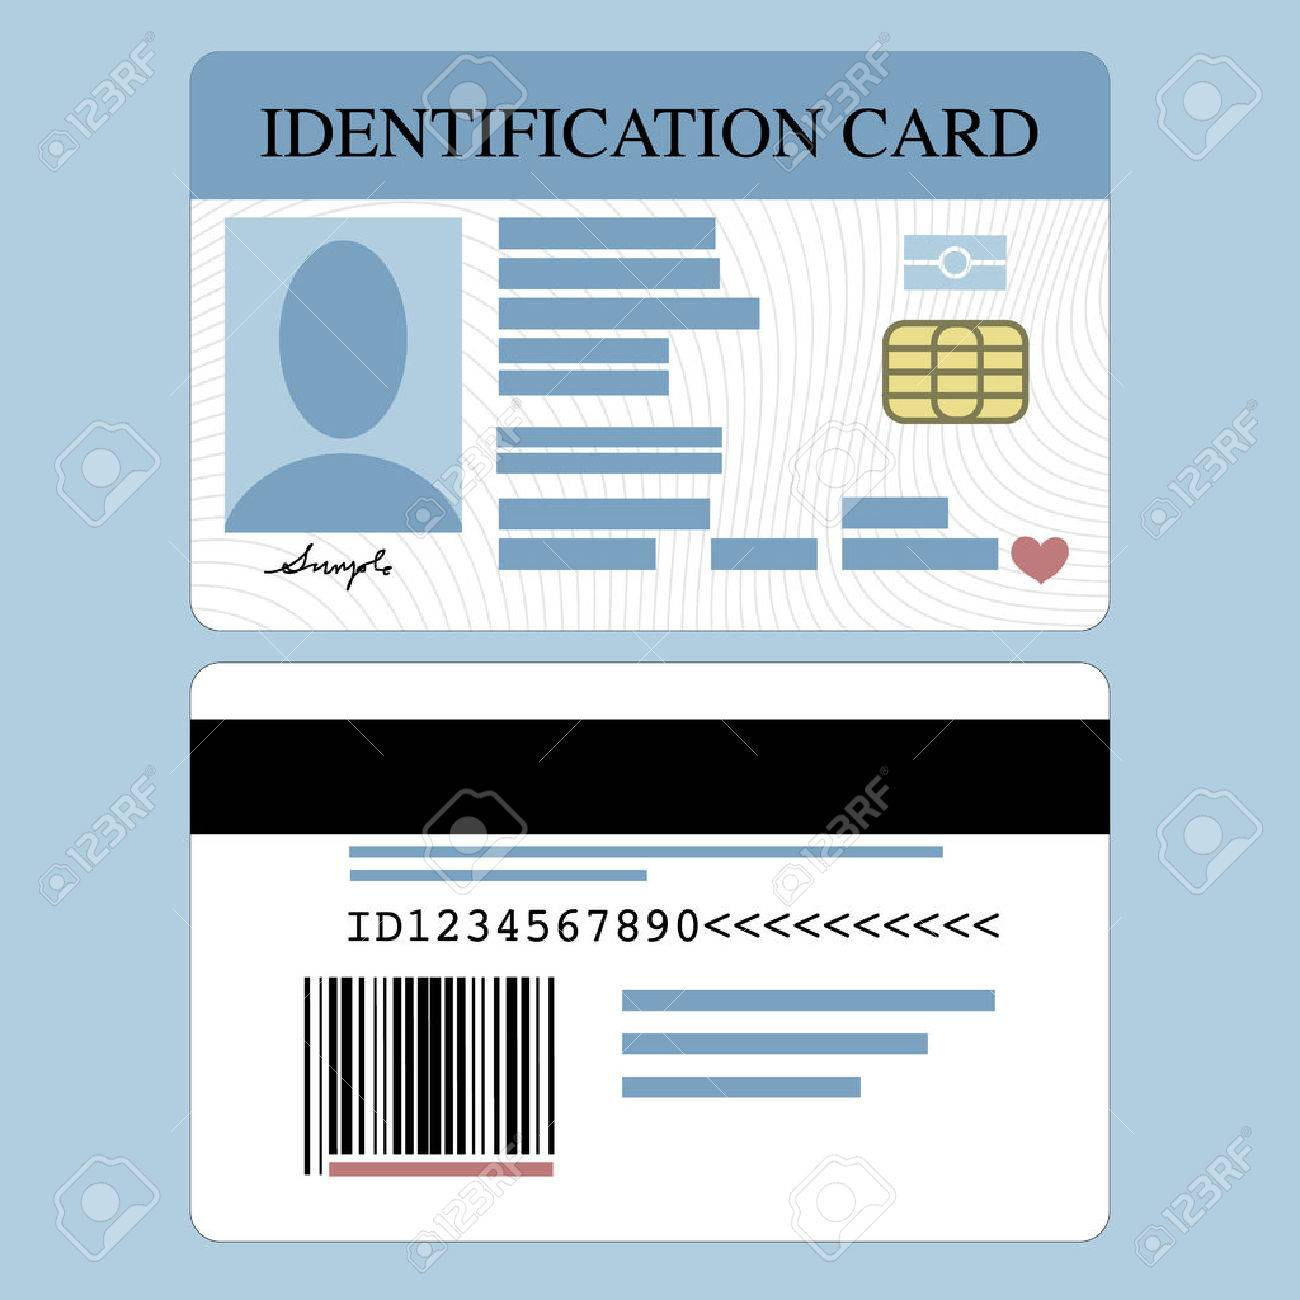 free identification cards